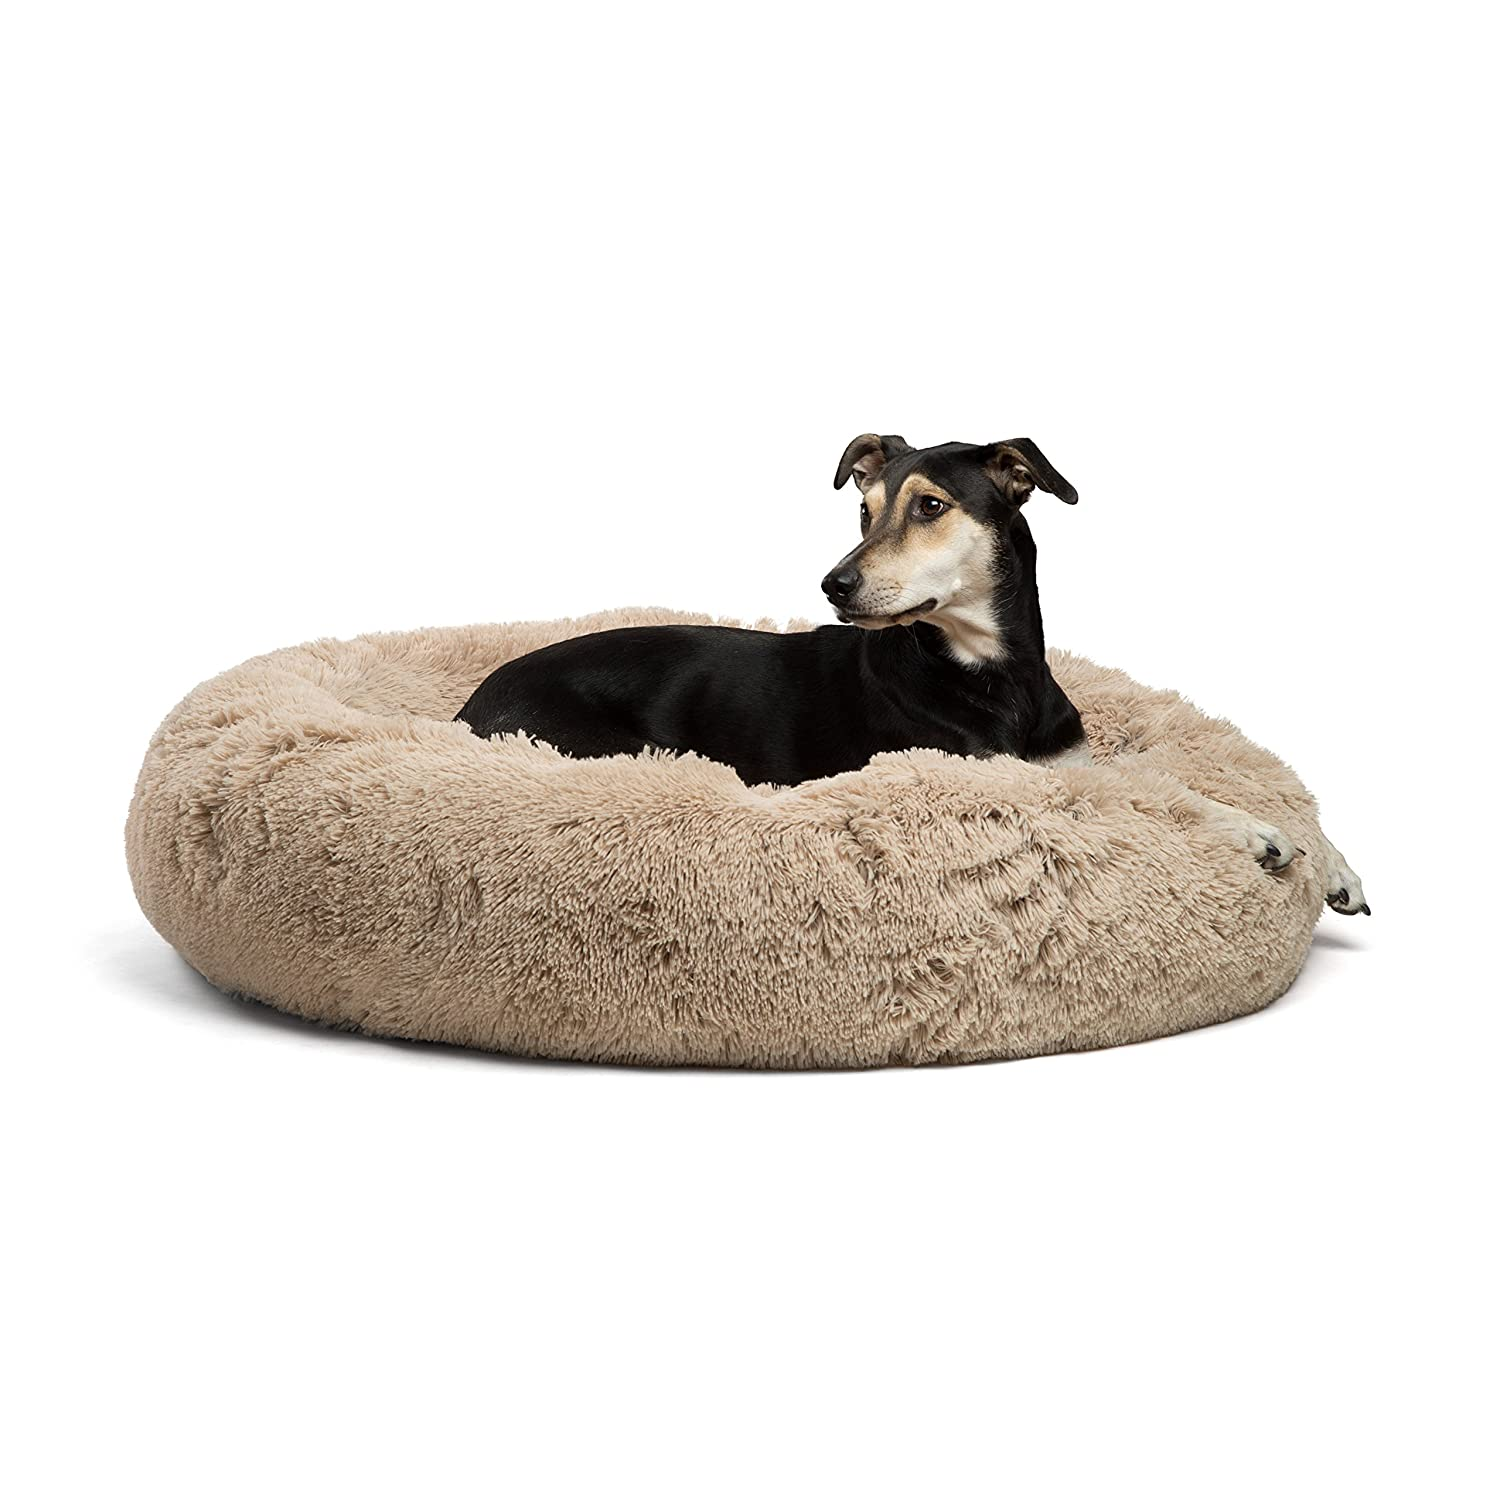 Coziest dog bed for your dog • Cozy Warm Gifts for the holiday